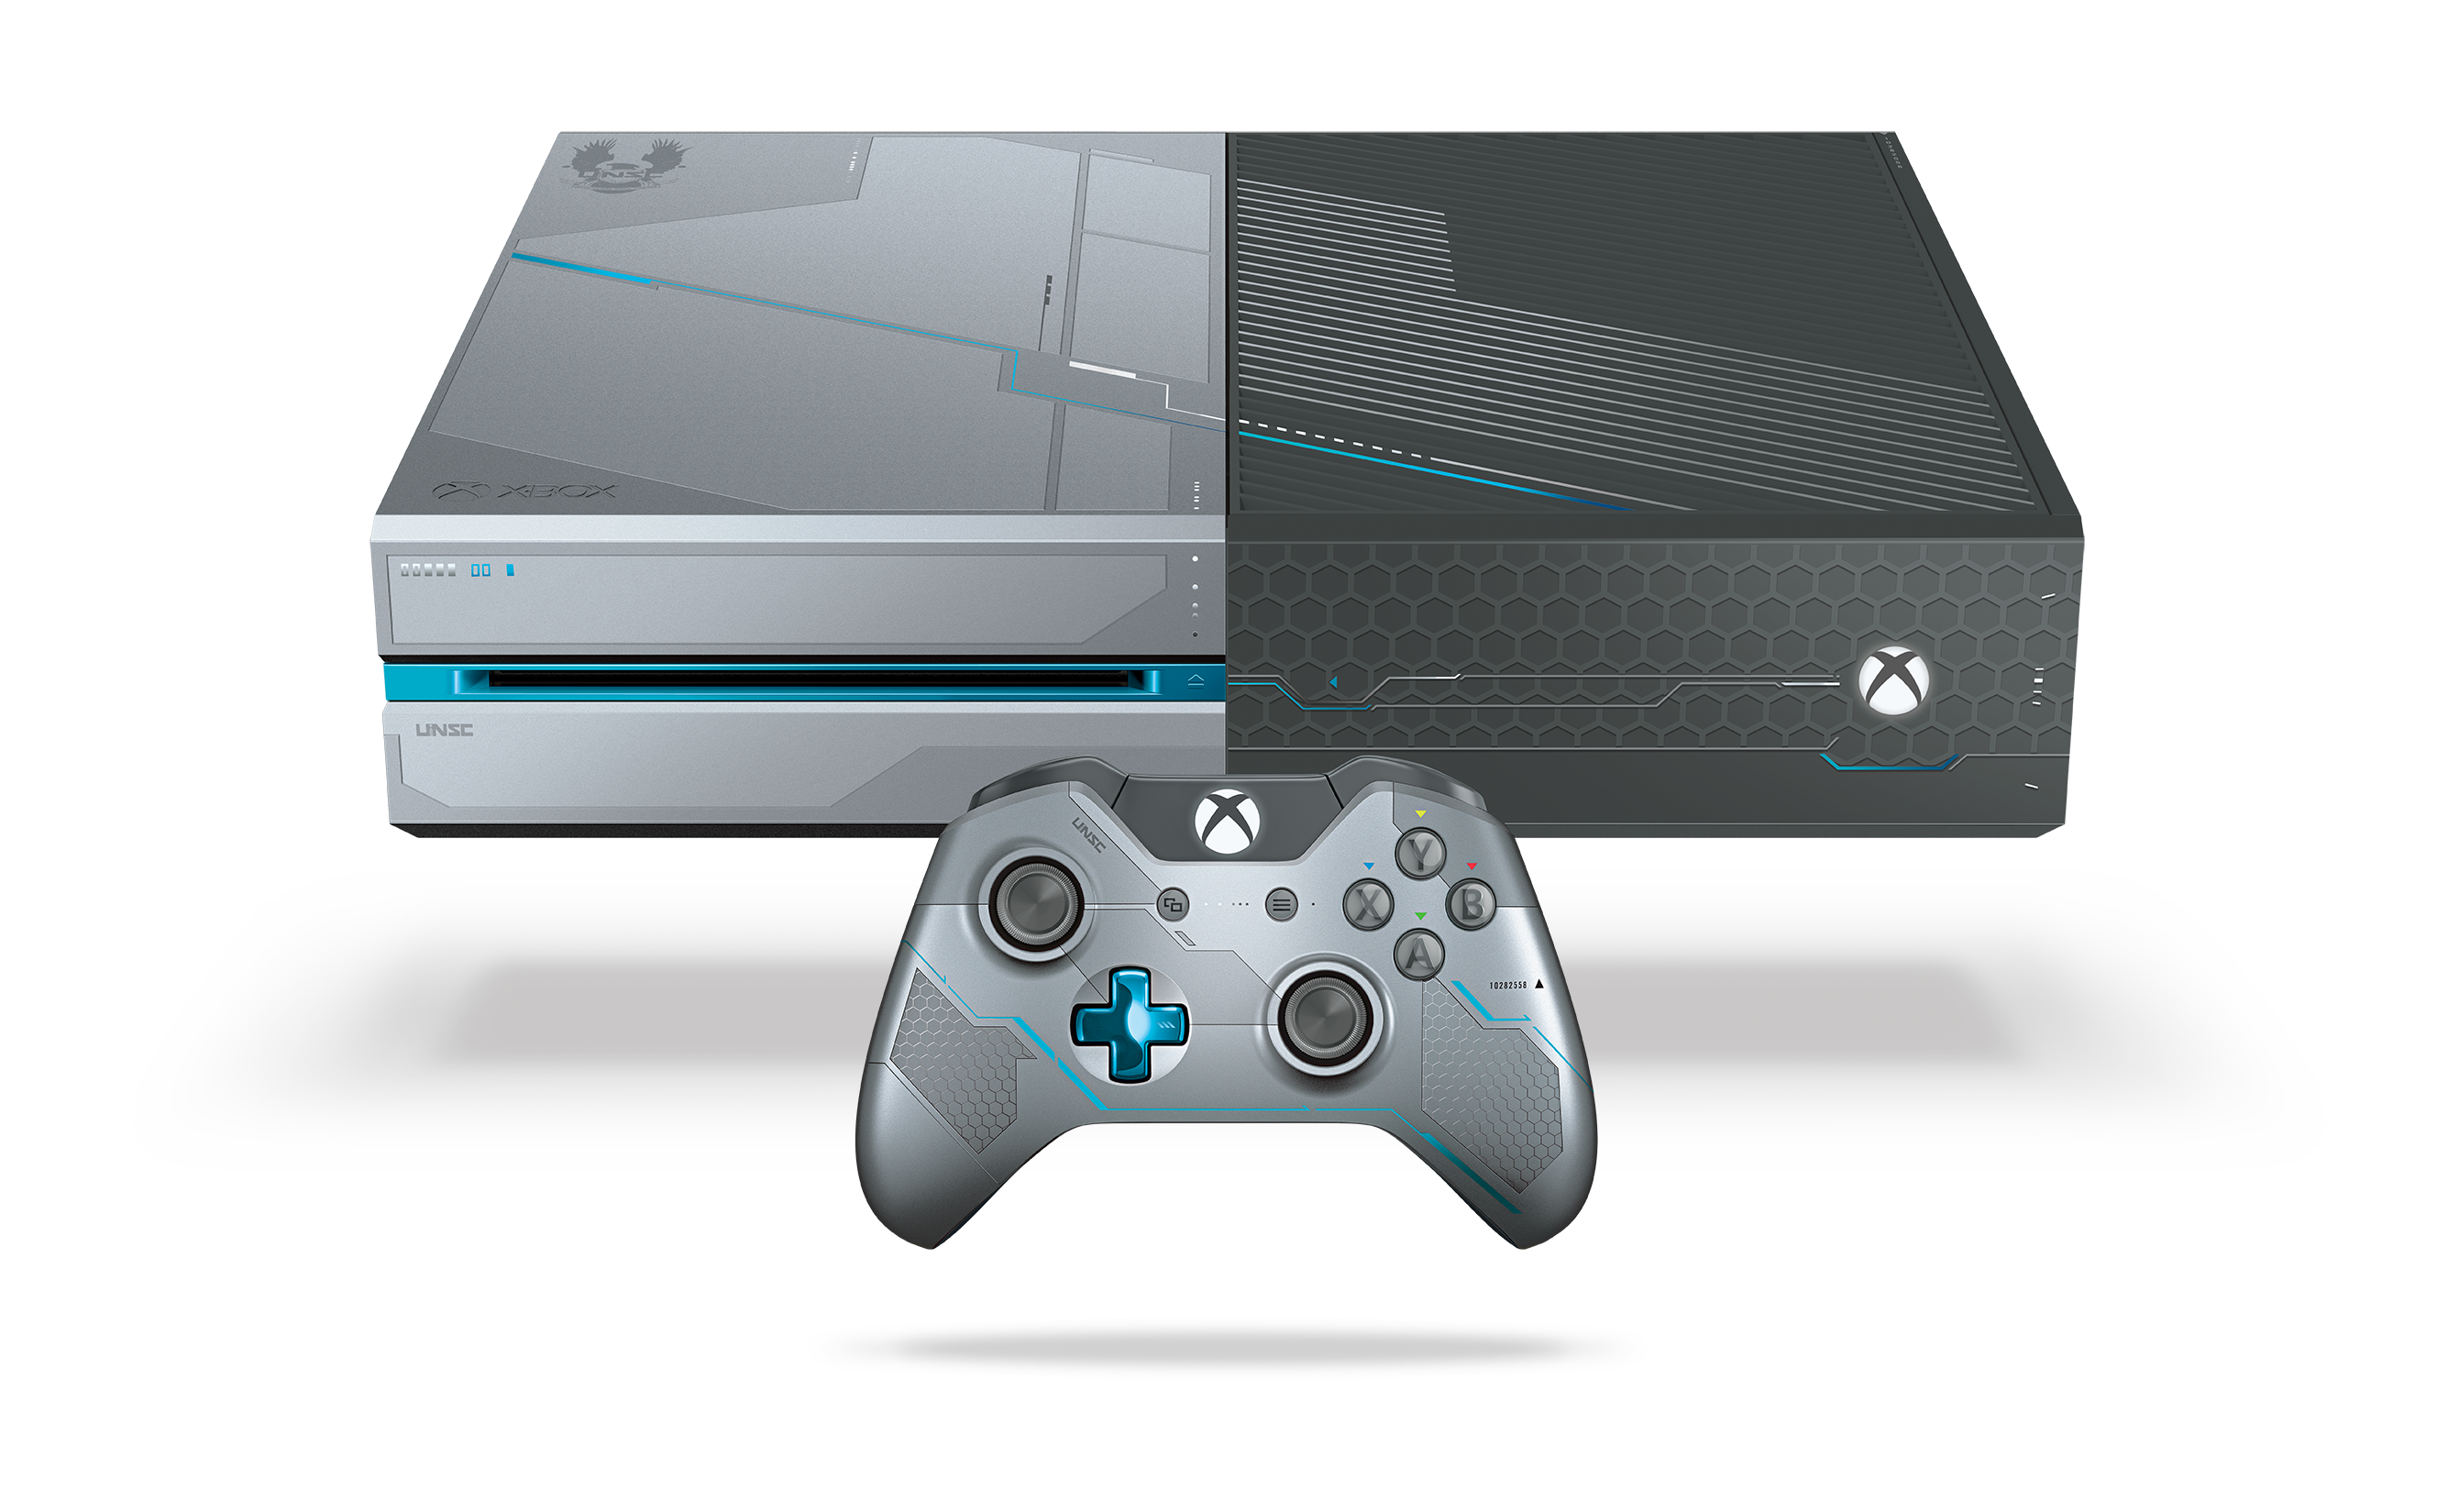 Xbox-One-Limited-Edition-Halo-5-Guardians-Angled-Render-png